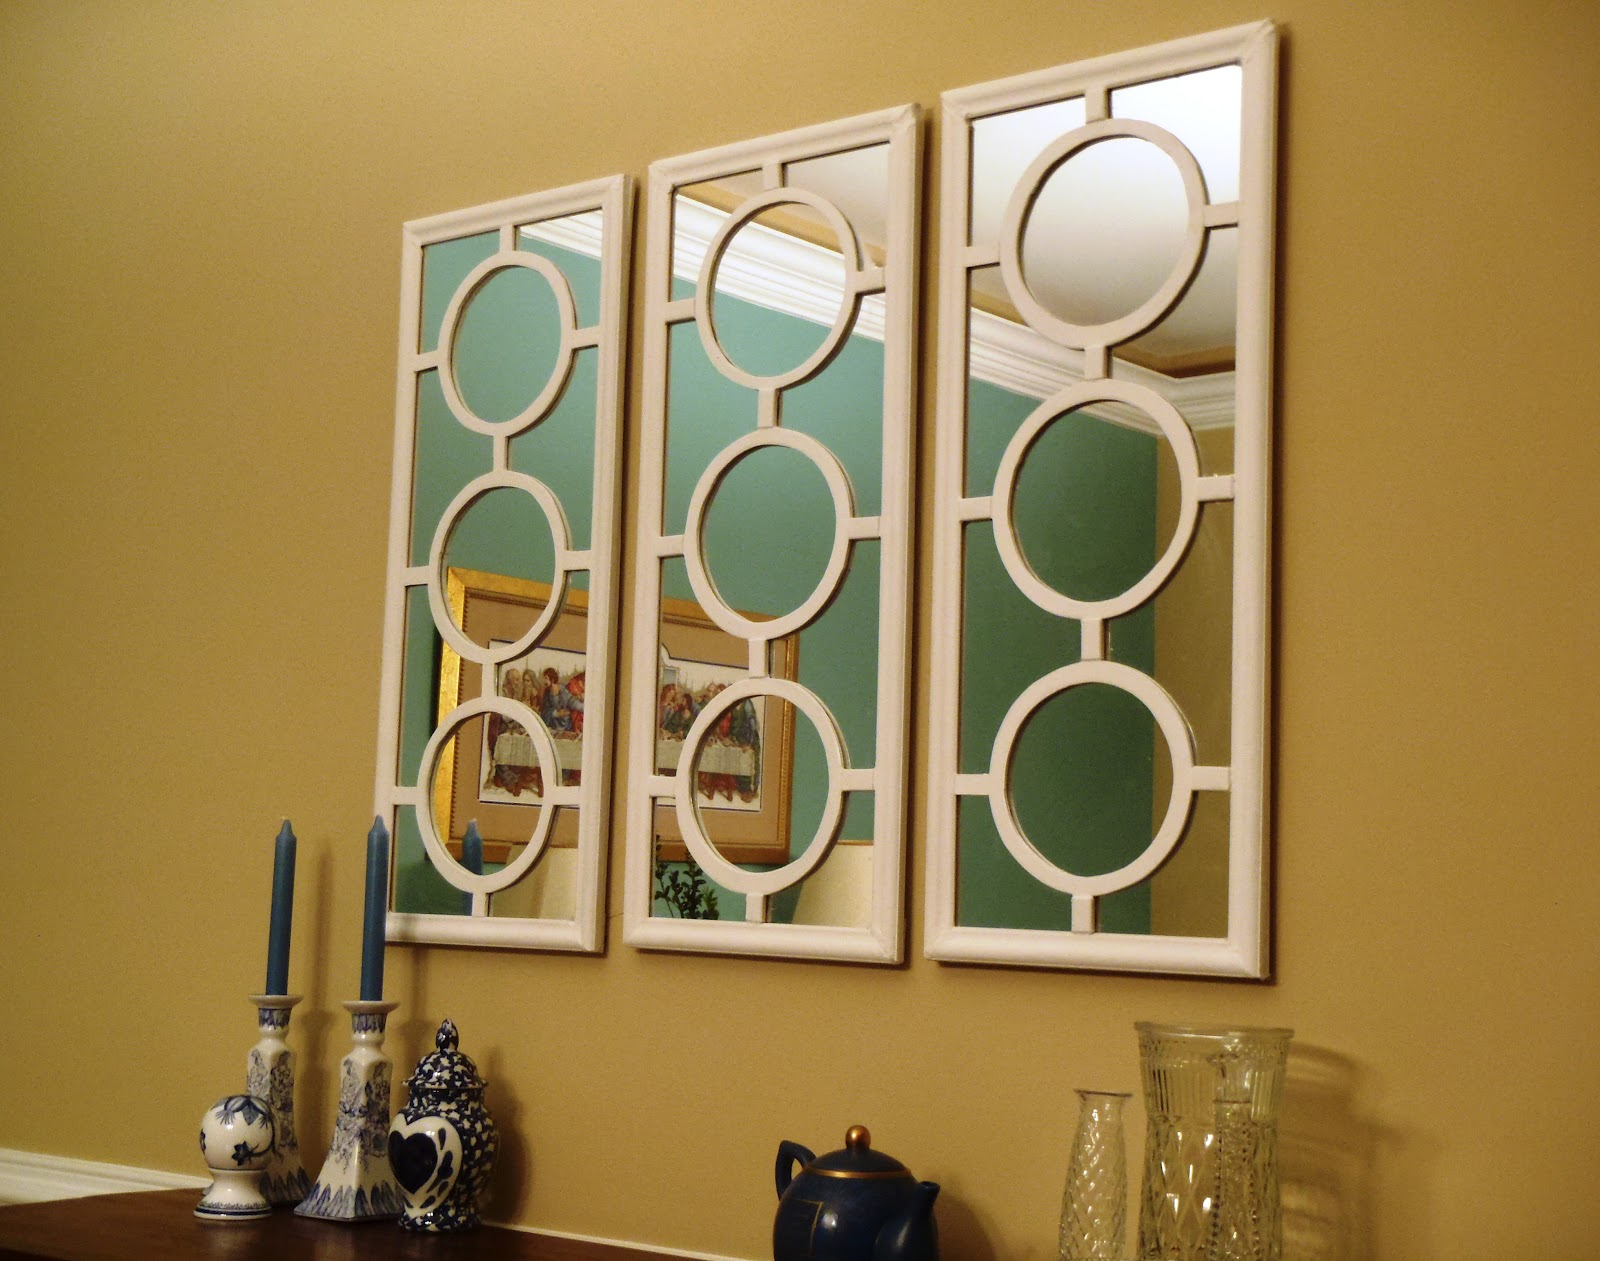 Lazy liz on less dining wall mirror decor for Wall mirror design